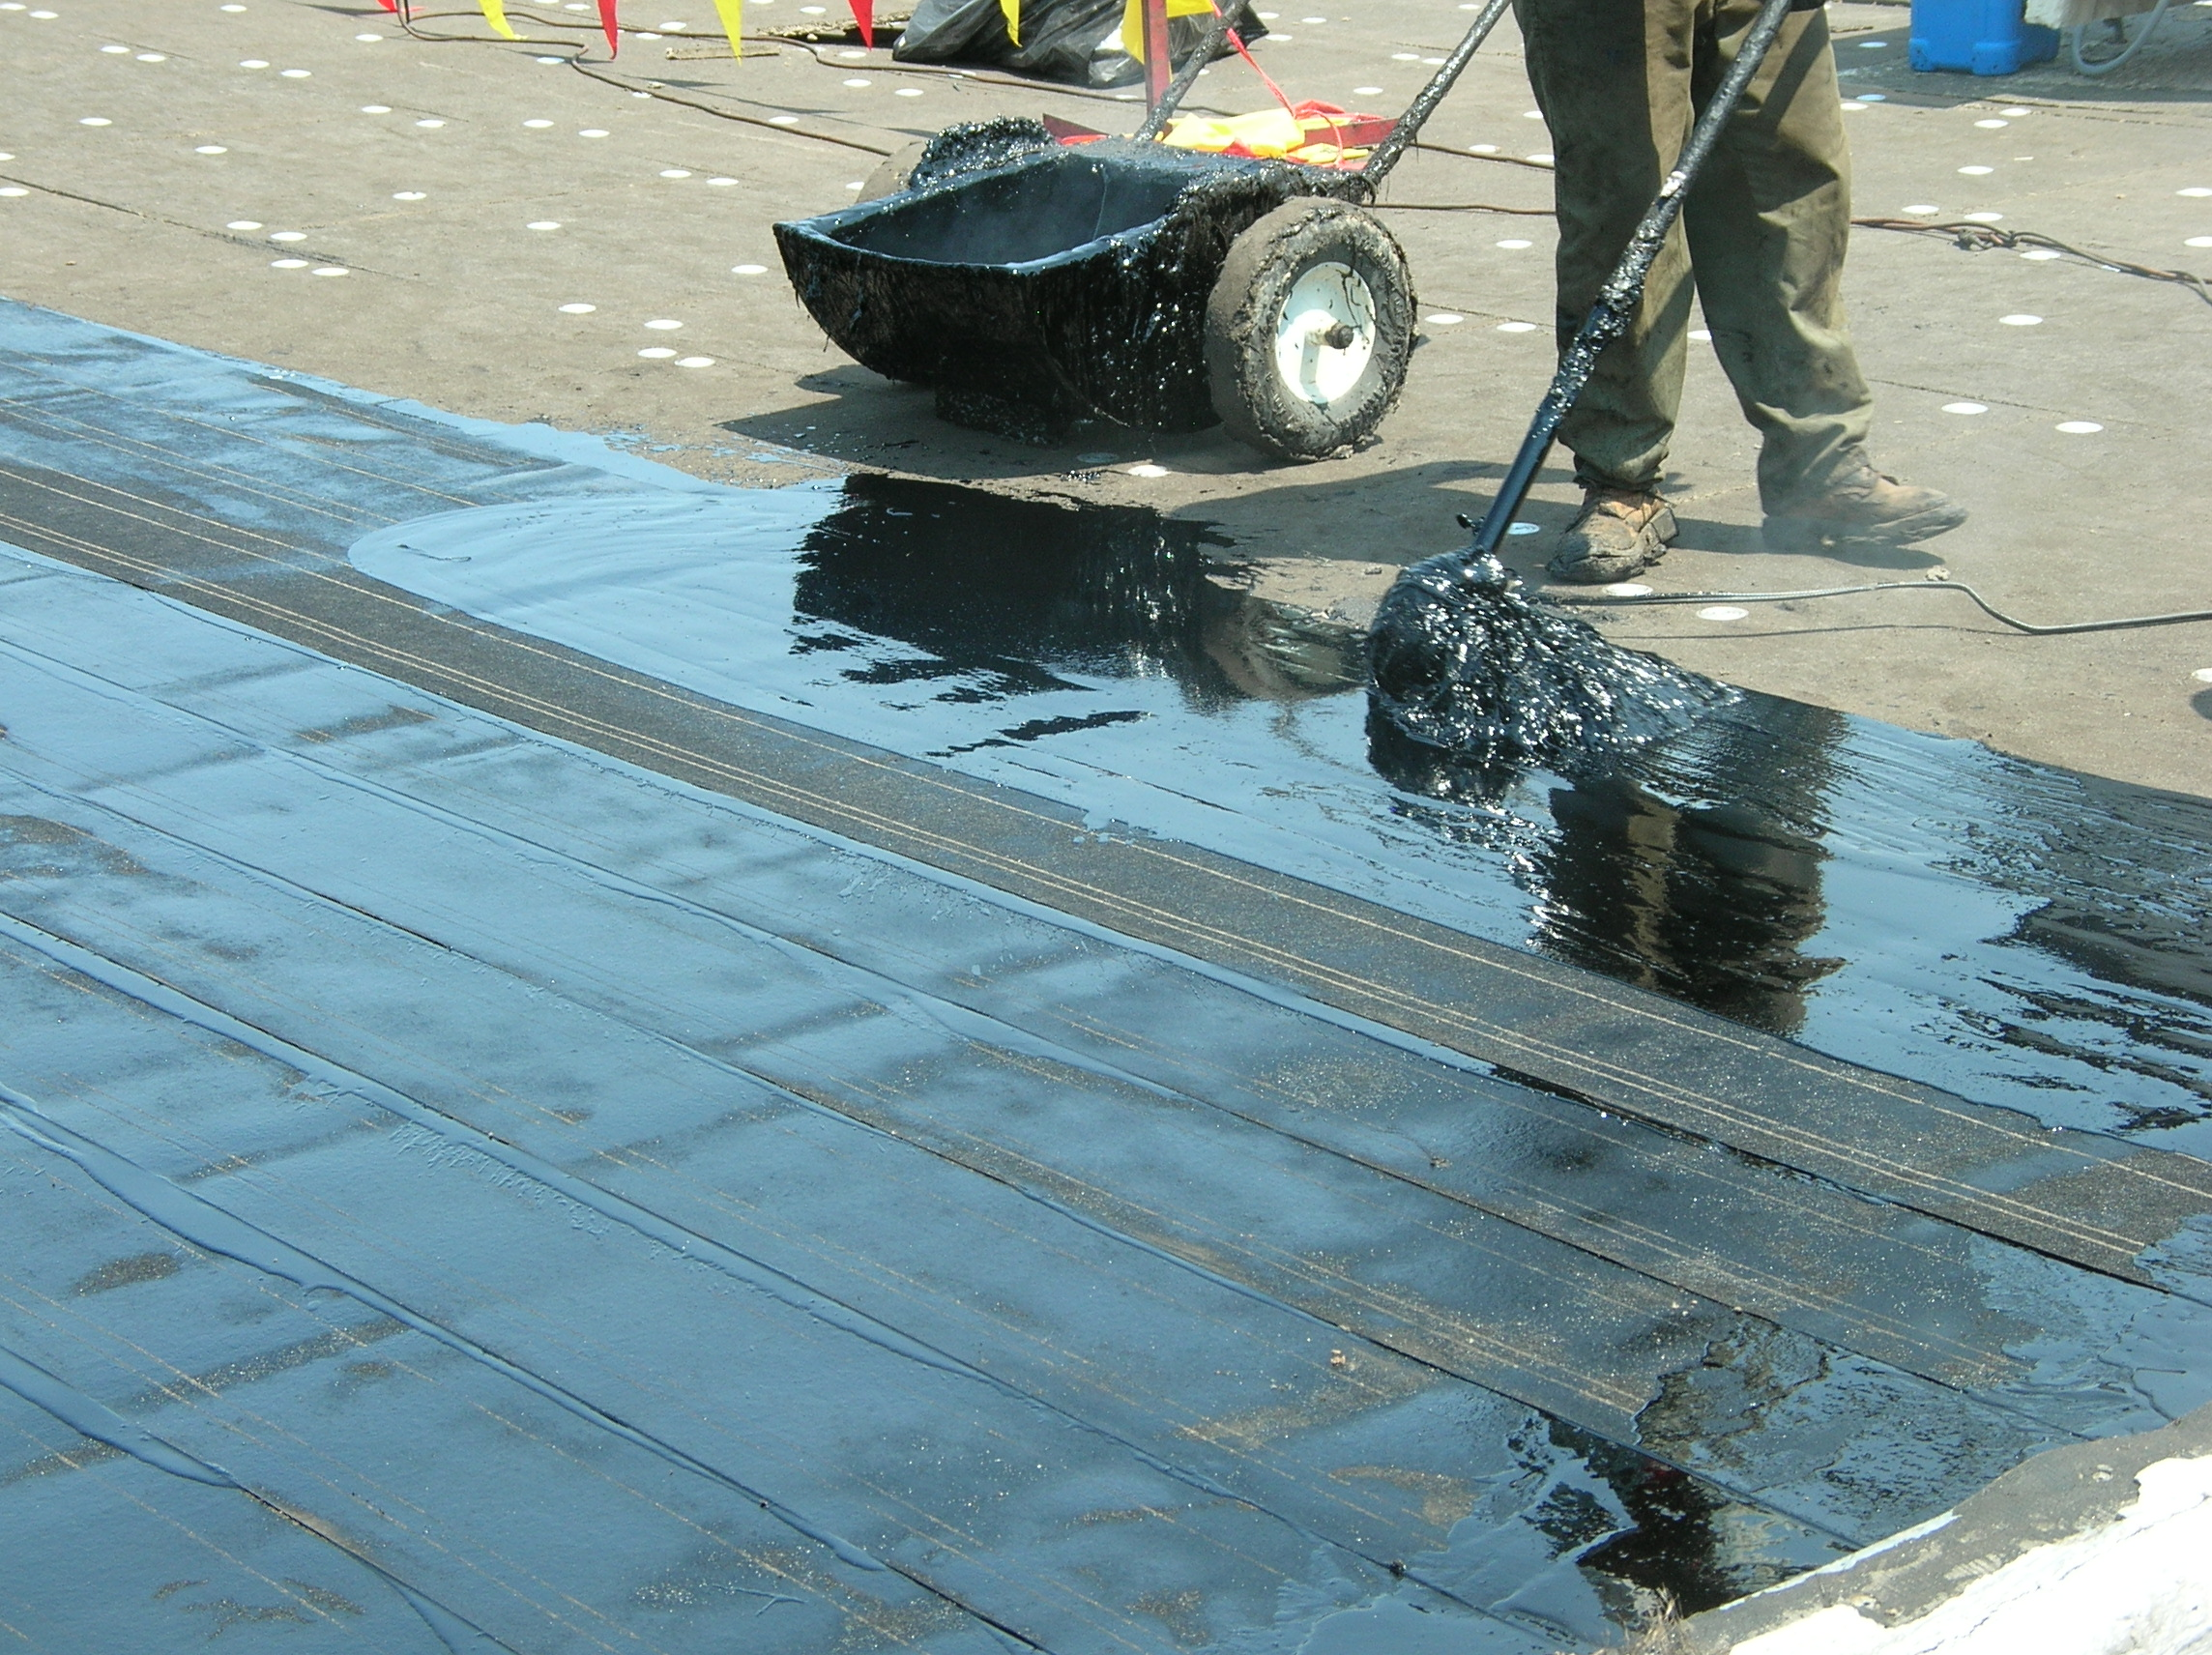 Roofing asphalt being applied to a built-up roof: Hot mopping in the field of the roof.